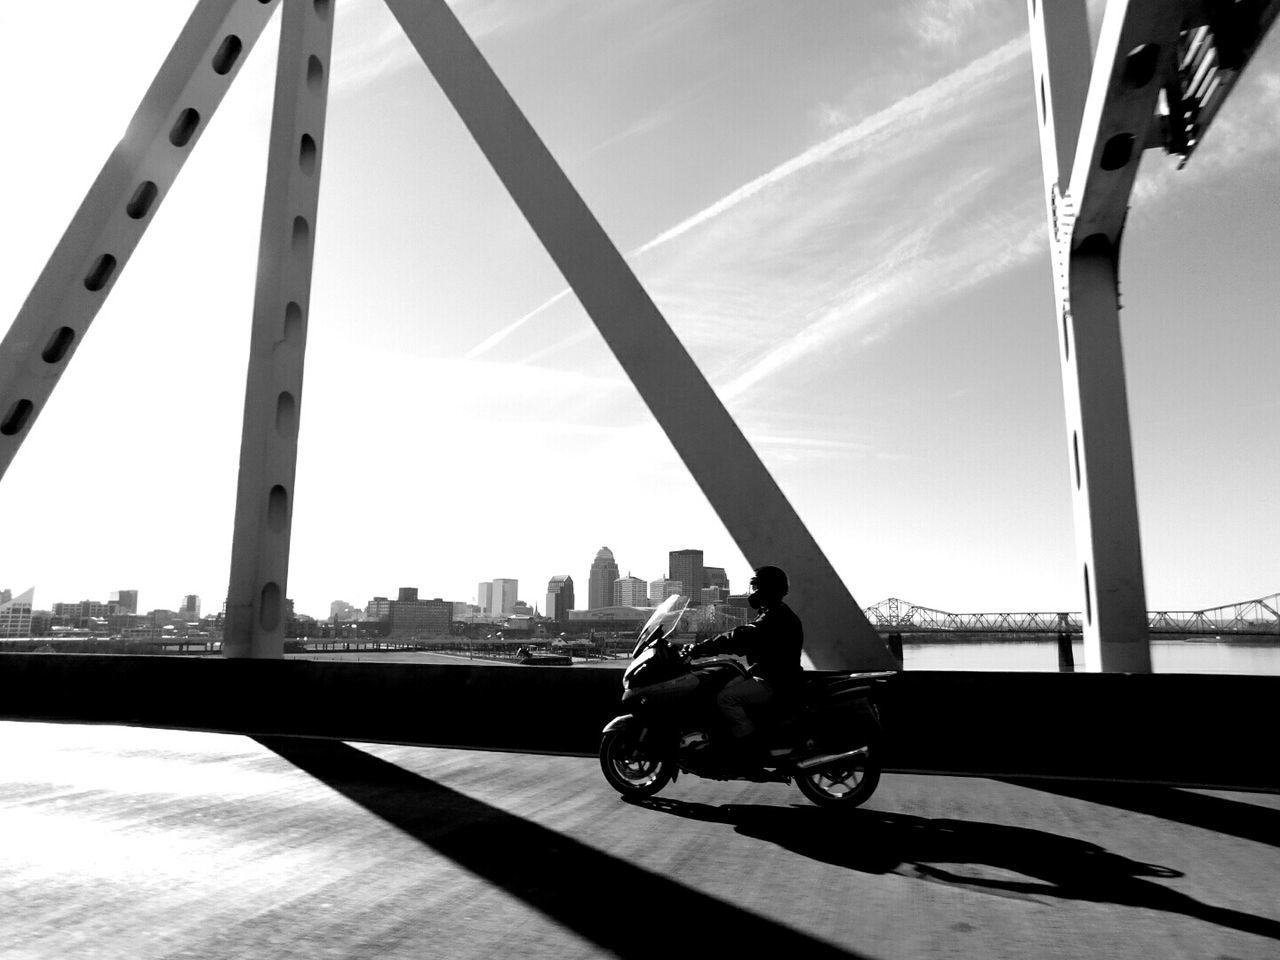 Man Riding Motorcycle On Bridge During Sunny Day